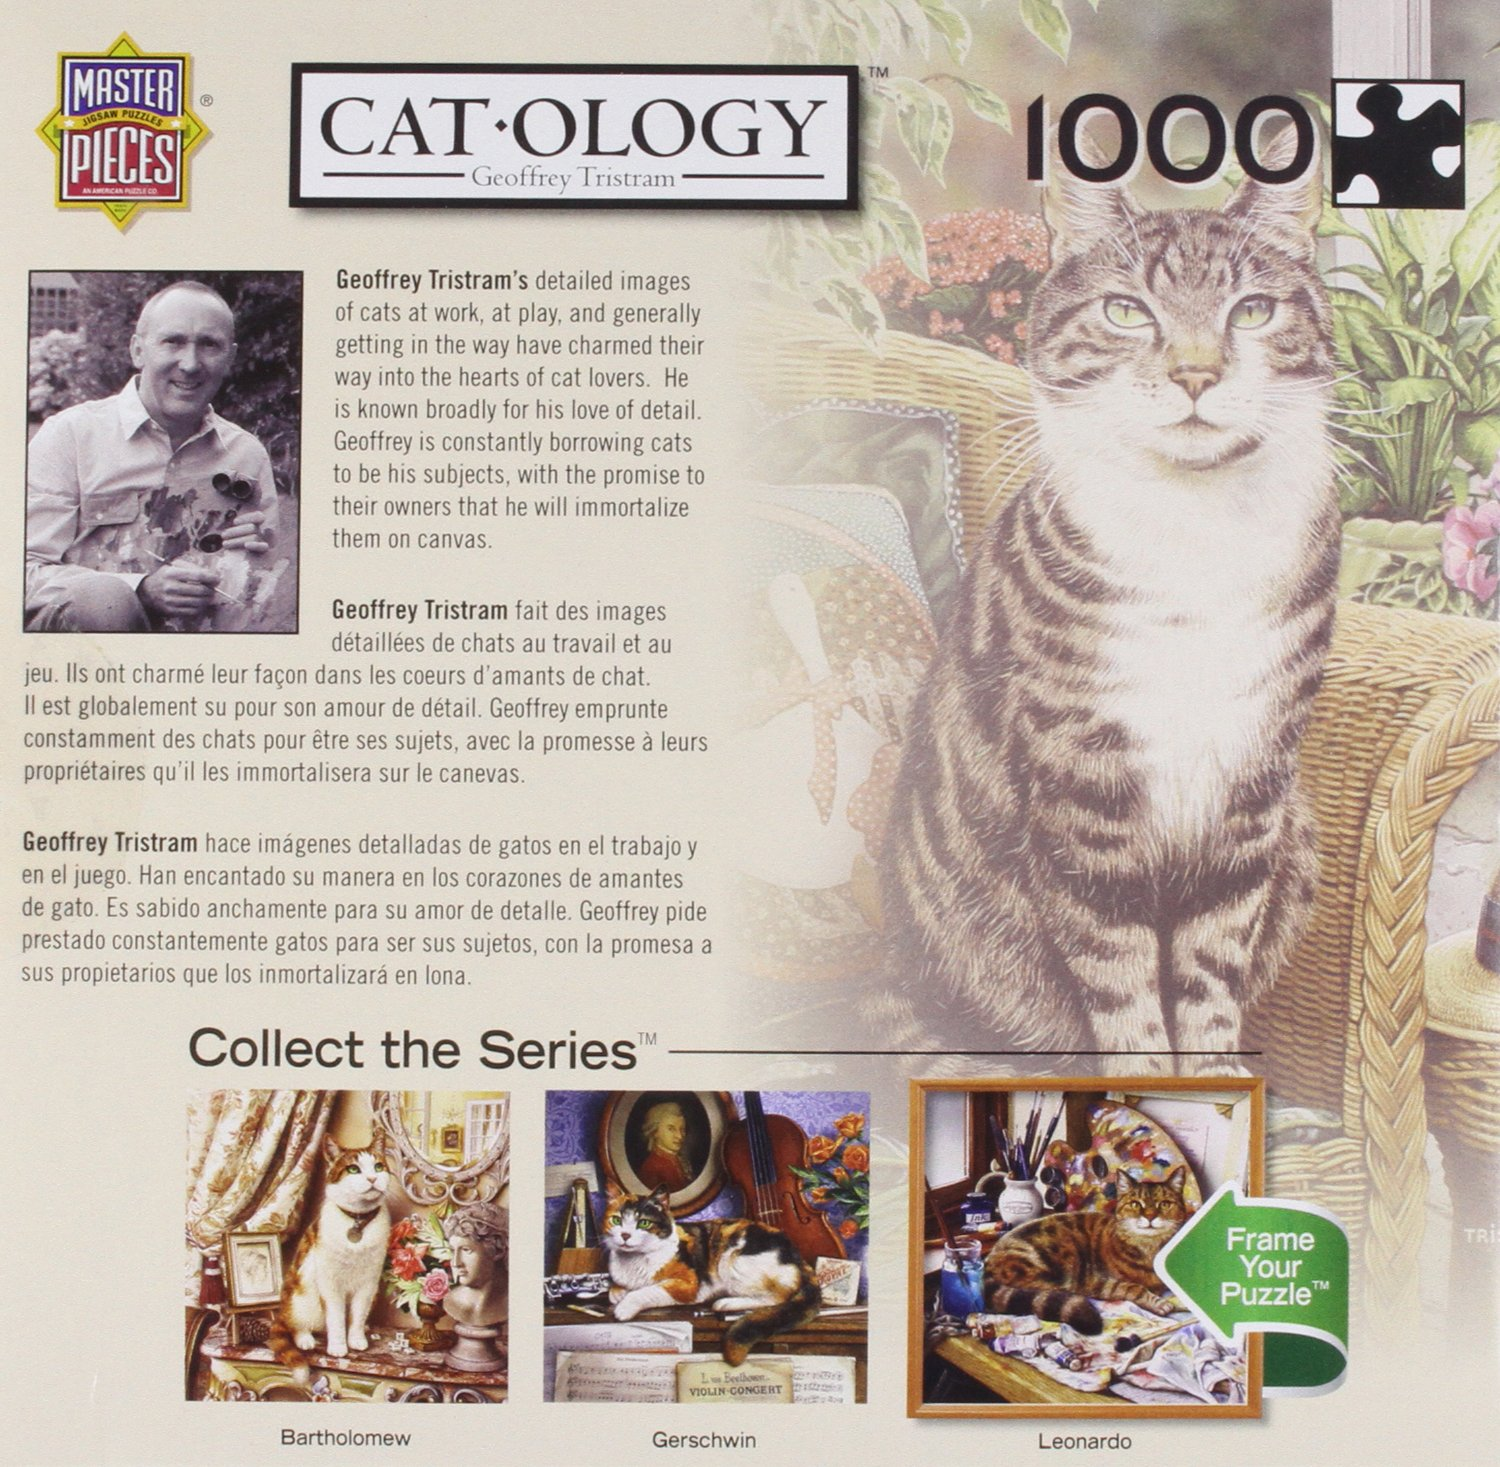 Amazon.com: MasterPieces Cat-O-Logy Hemingway Jigsaw Puzzle, 1000-Piece: Toys & Games